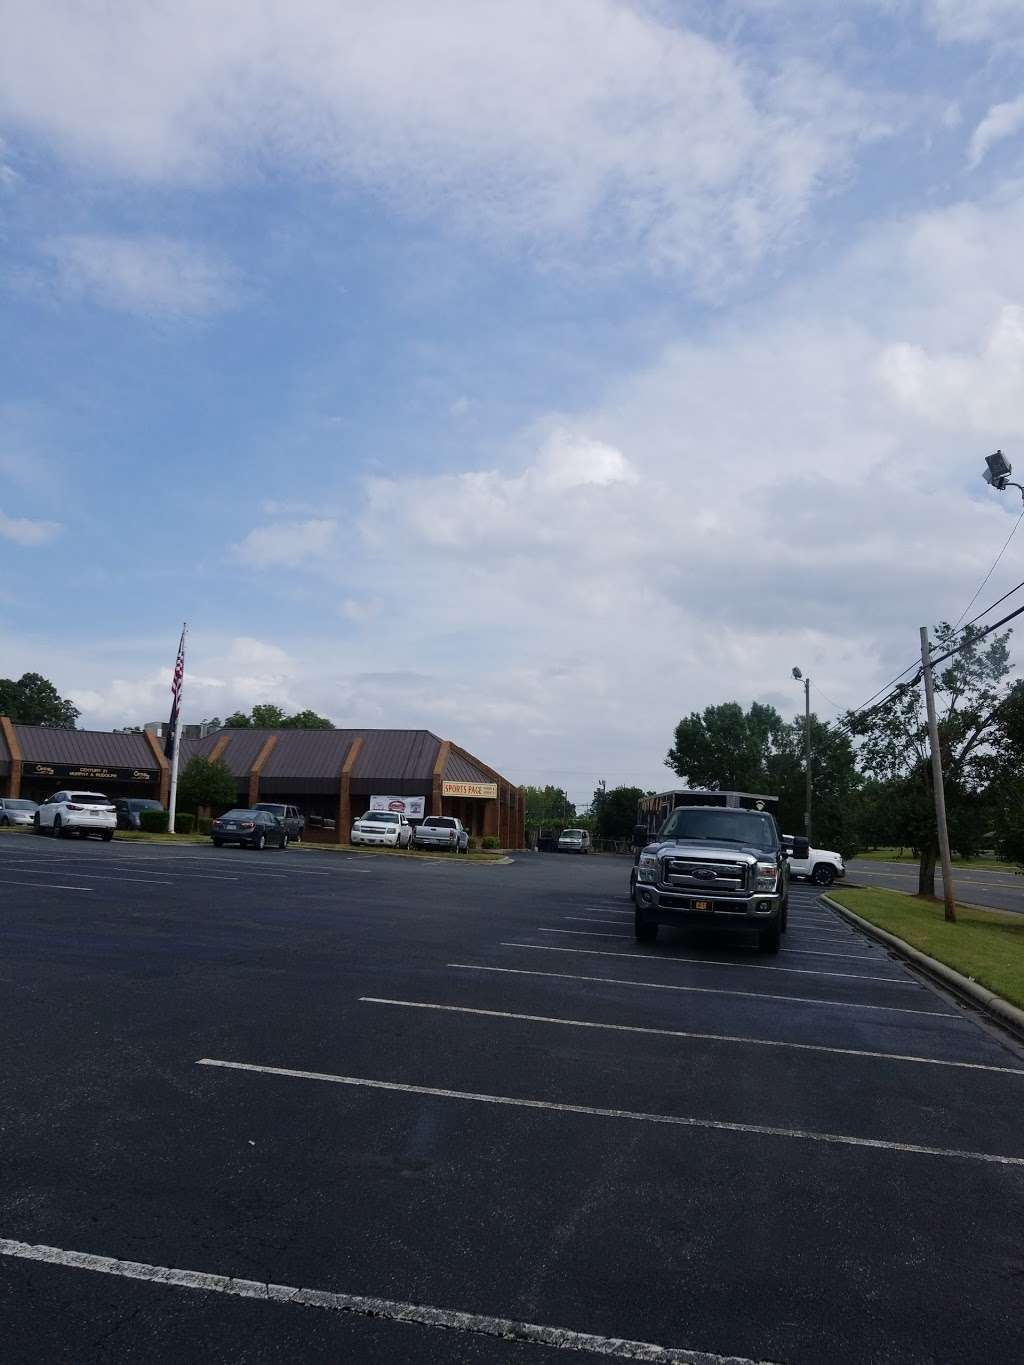 Coulwood Shopping Center - shopping mall  | Photo 2 of 2 | Address: 8410 Bellhaven Blvd, Charlotte, NC 28216, USA